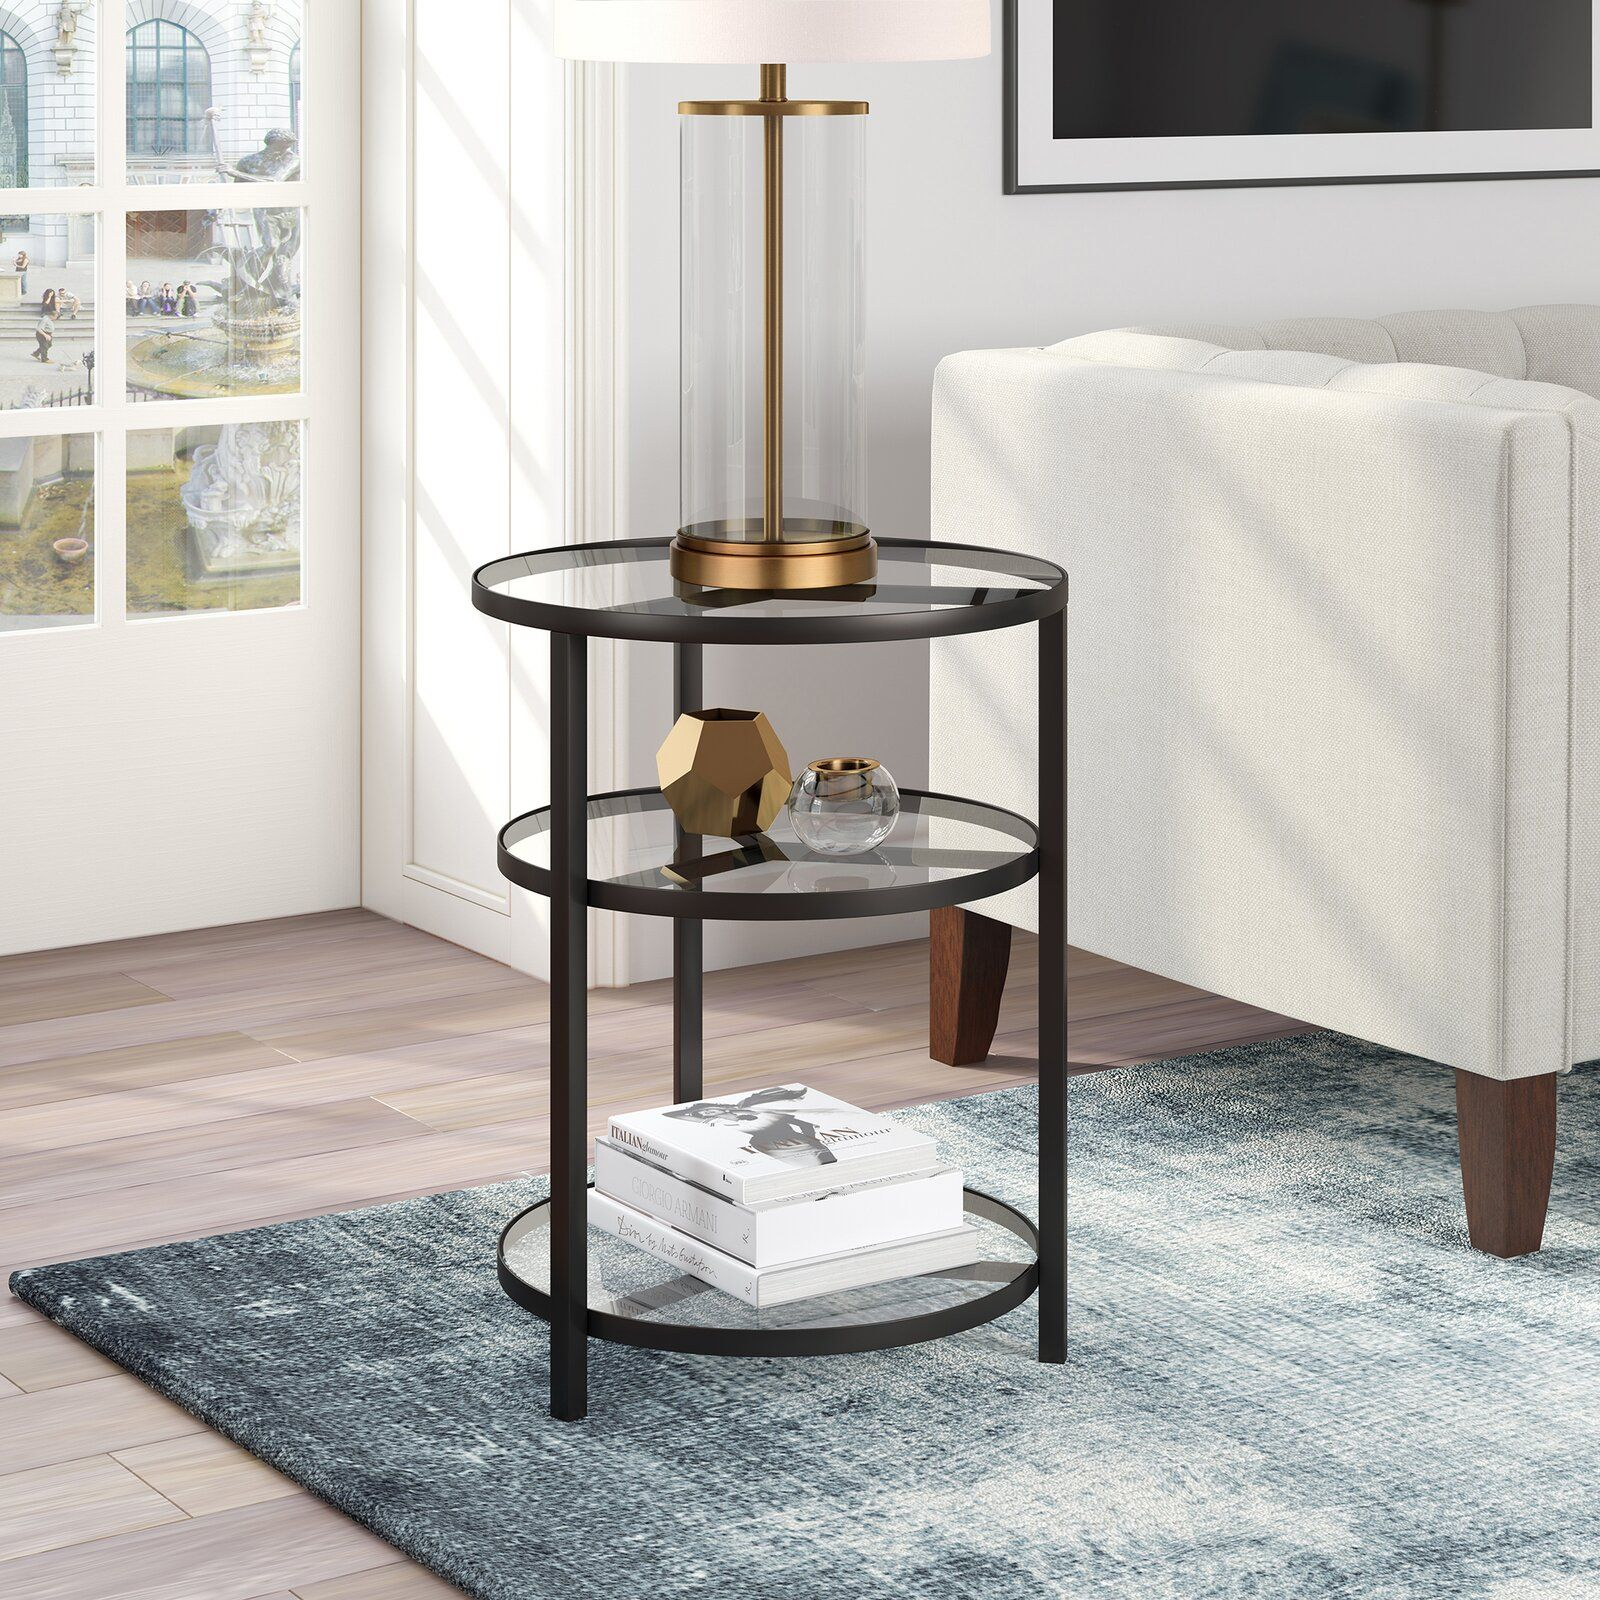 Goncalves Glass Top End Table In 2020 Glass Top End Tables End Tables Modern Furniture Living Room